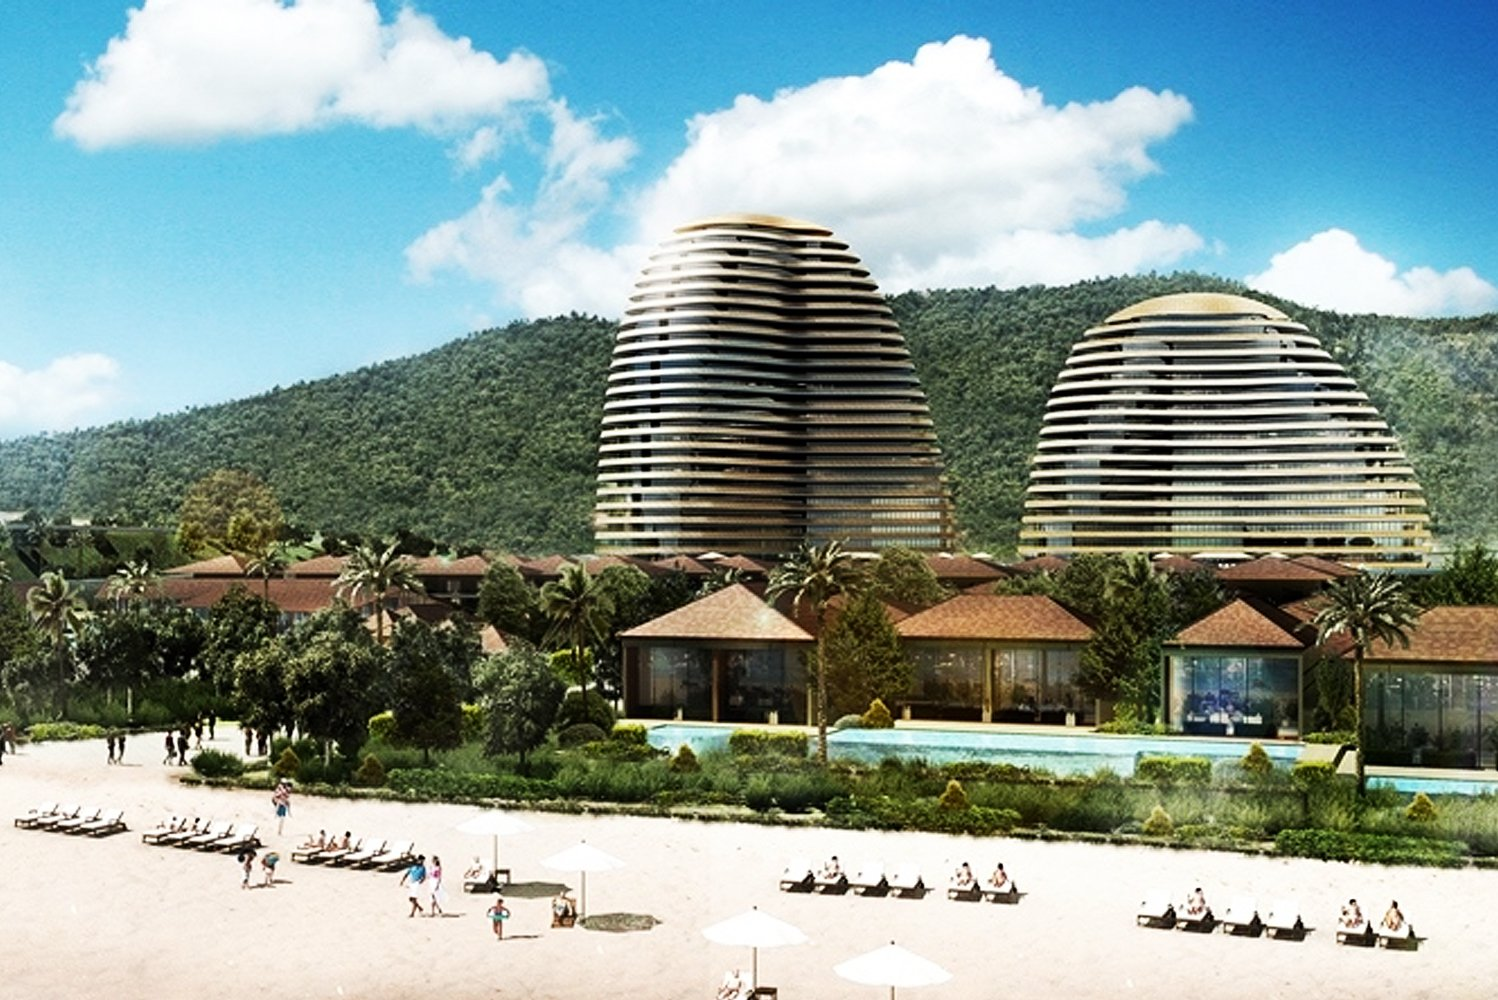 The development drew inspiration from the local history of Mui Dinh, particularly that of the Cham tribal culture.